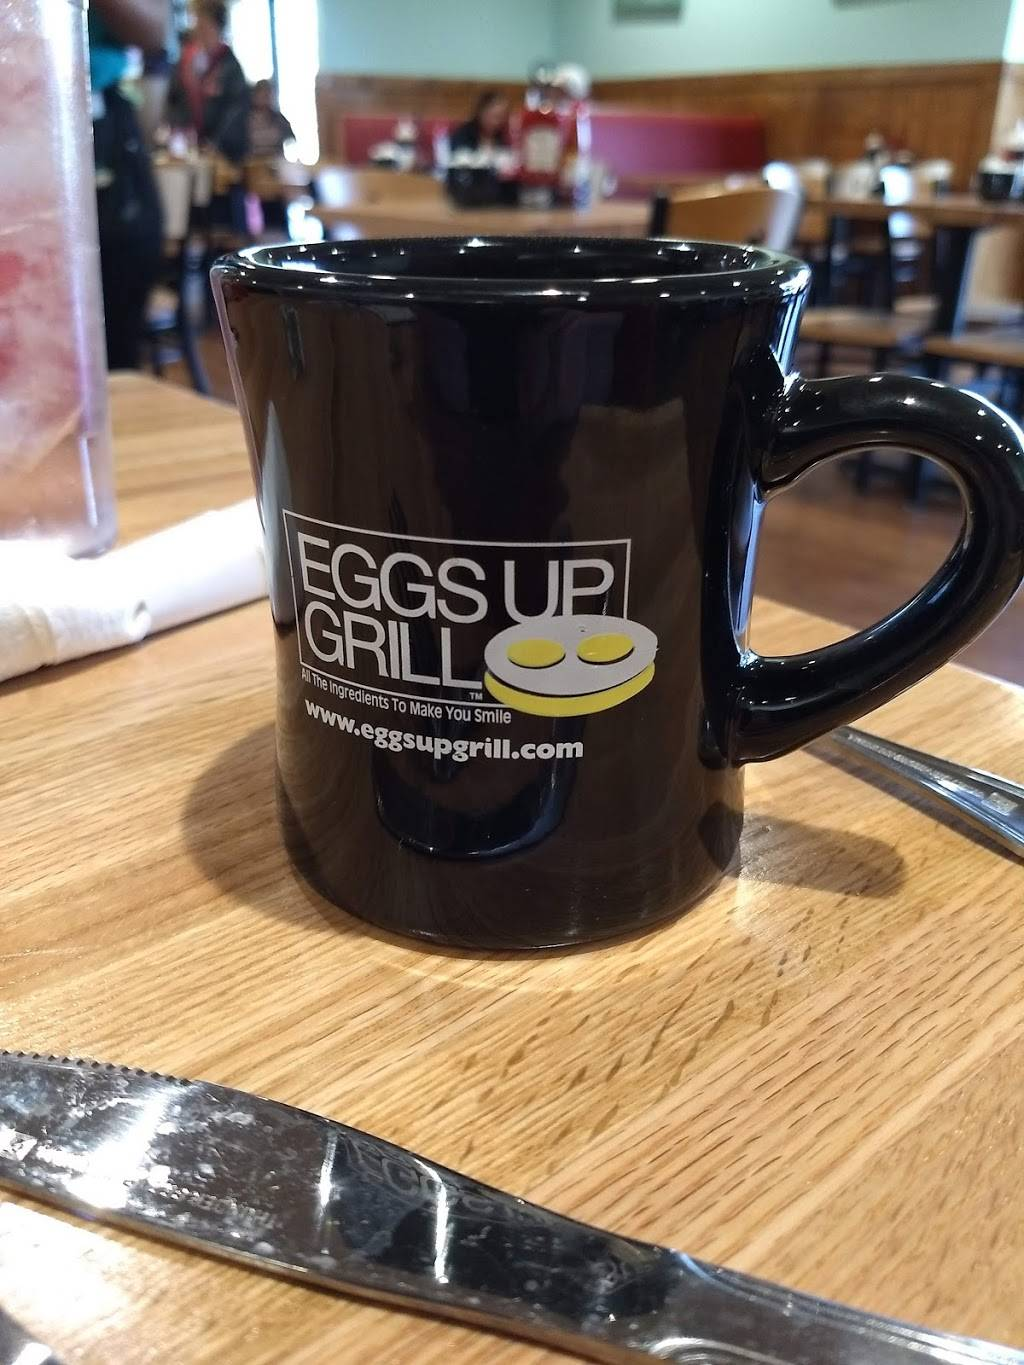 Eggs Up Grill | restaurant | 304 Village Creek Dr, Boiling Springs, SC 29316, USA | 8643081919 OR +1 864-308-1919